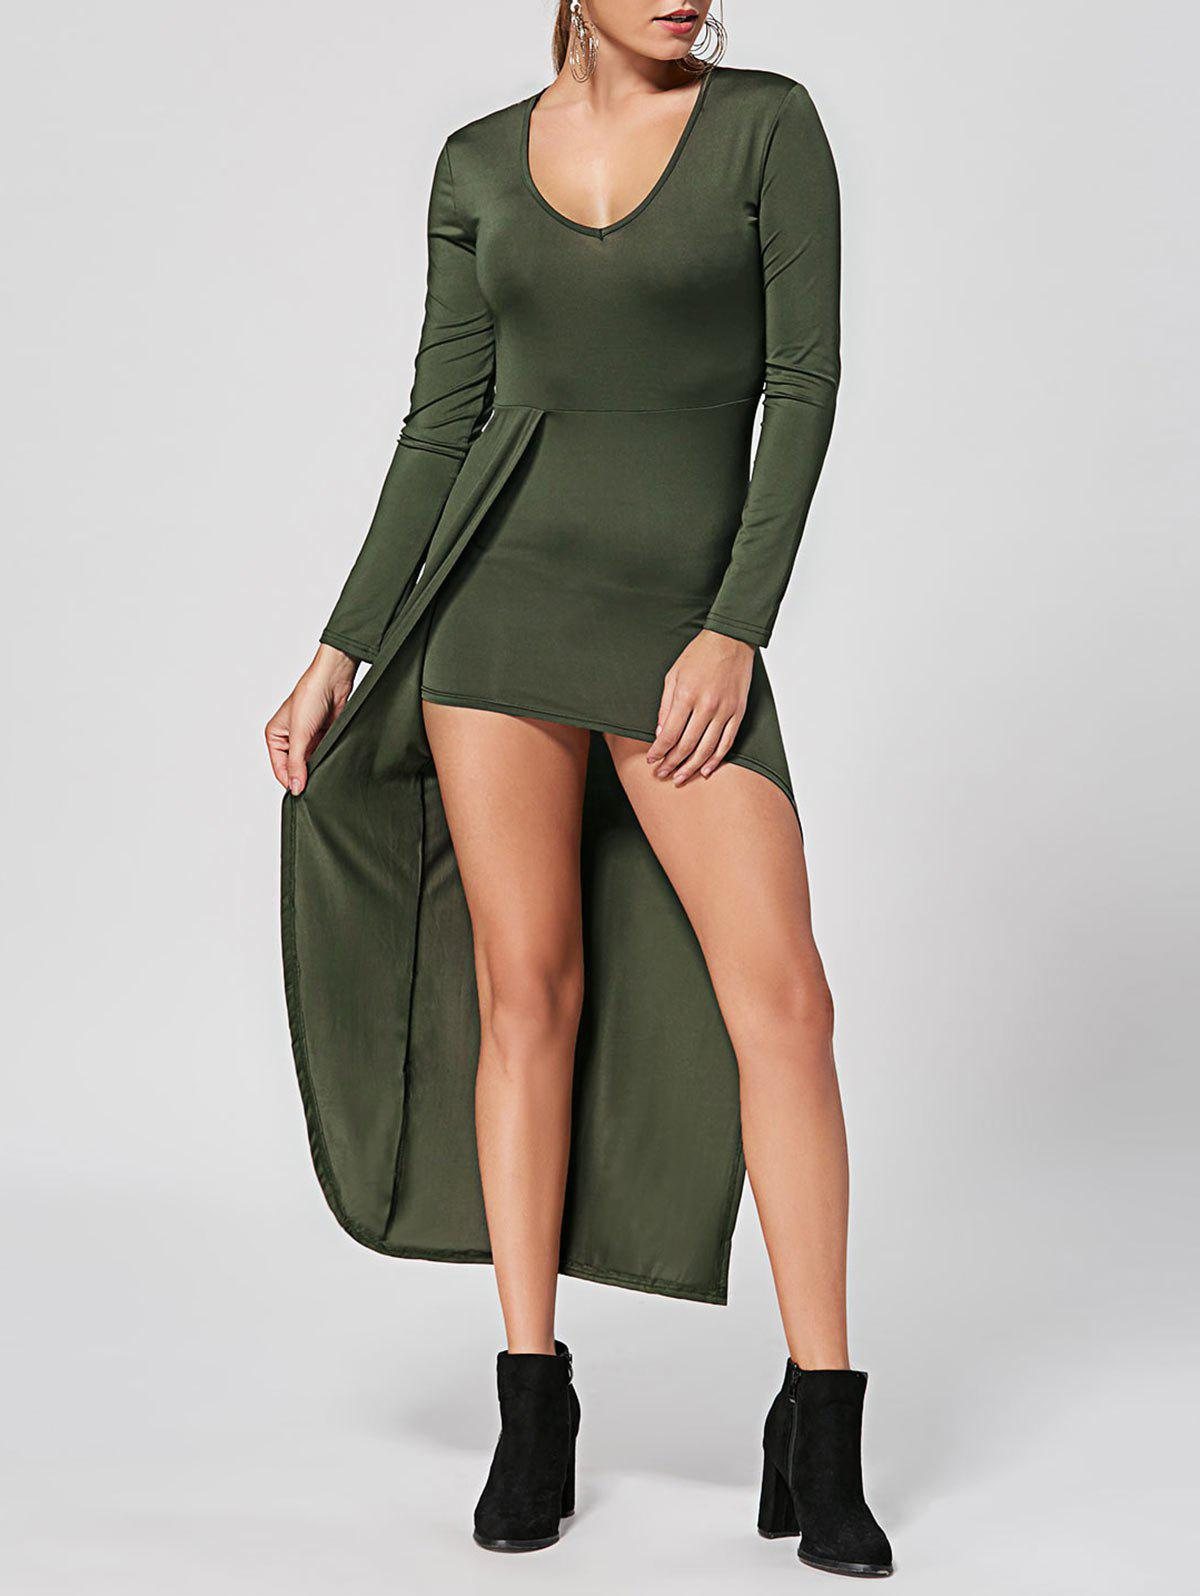 V Neck High Low Club Dress - armée verte M